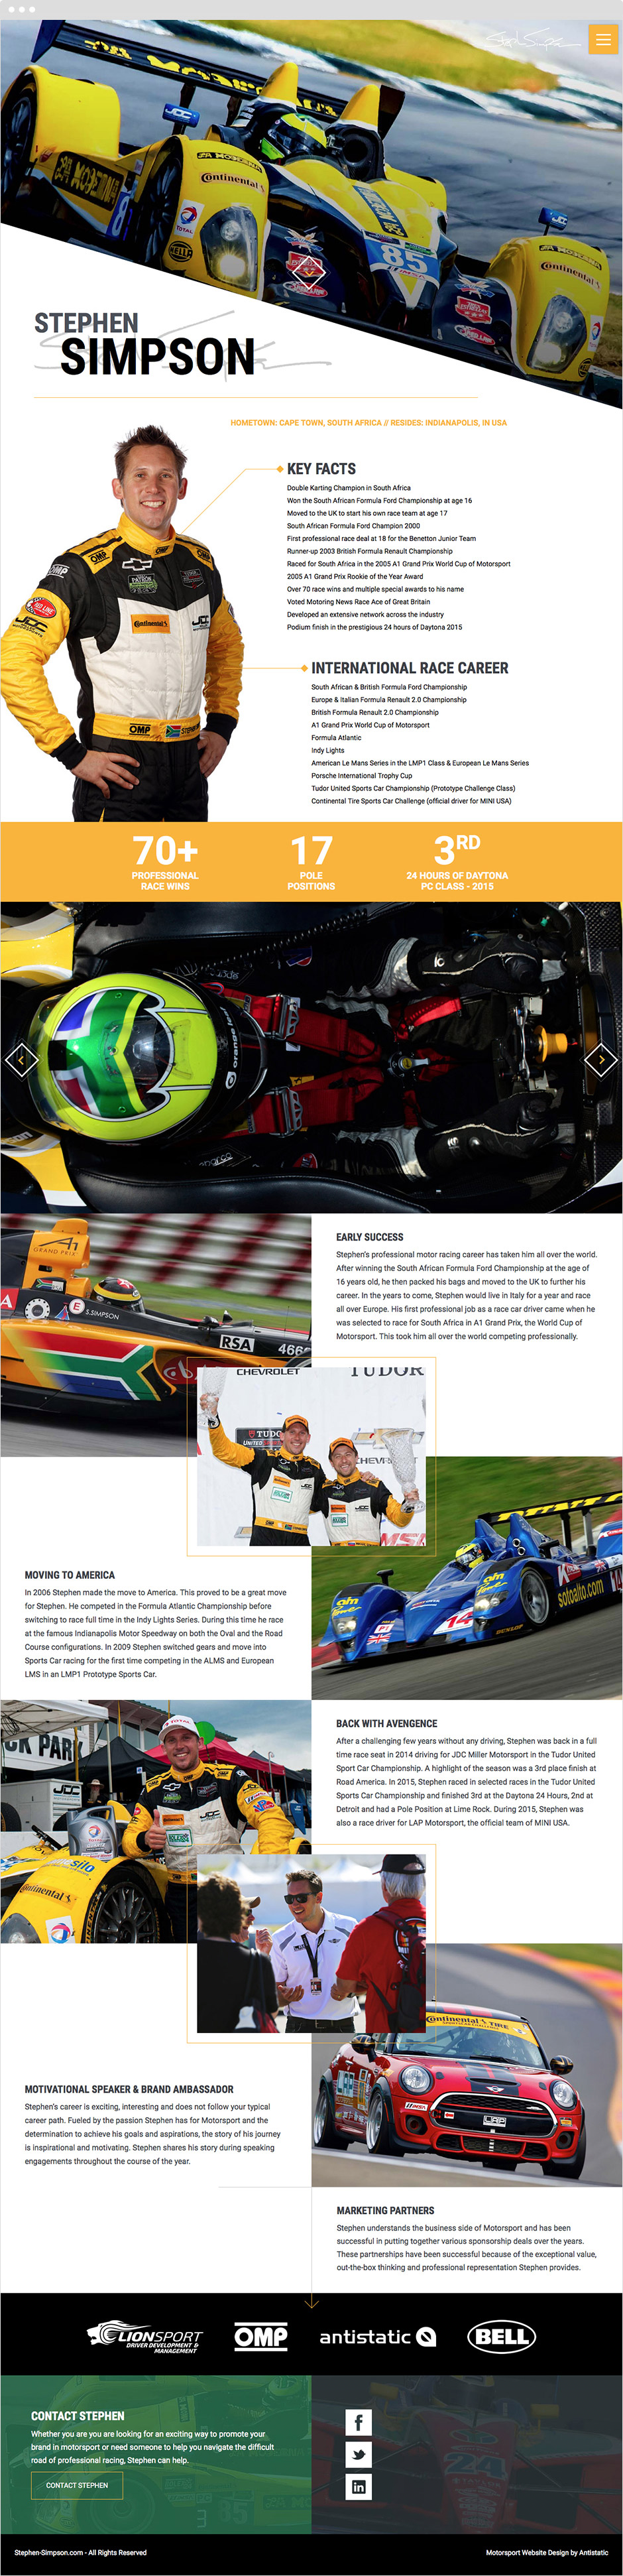 Responsive ExpressionEngine Web Design for Racing Driver Stephen Simpson